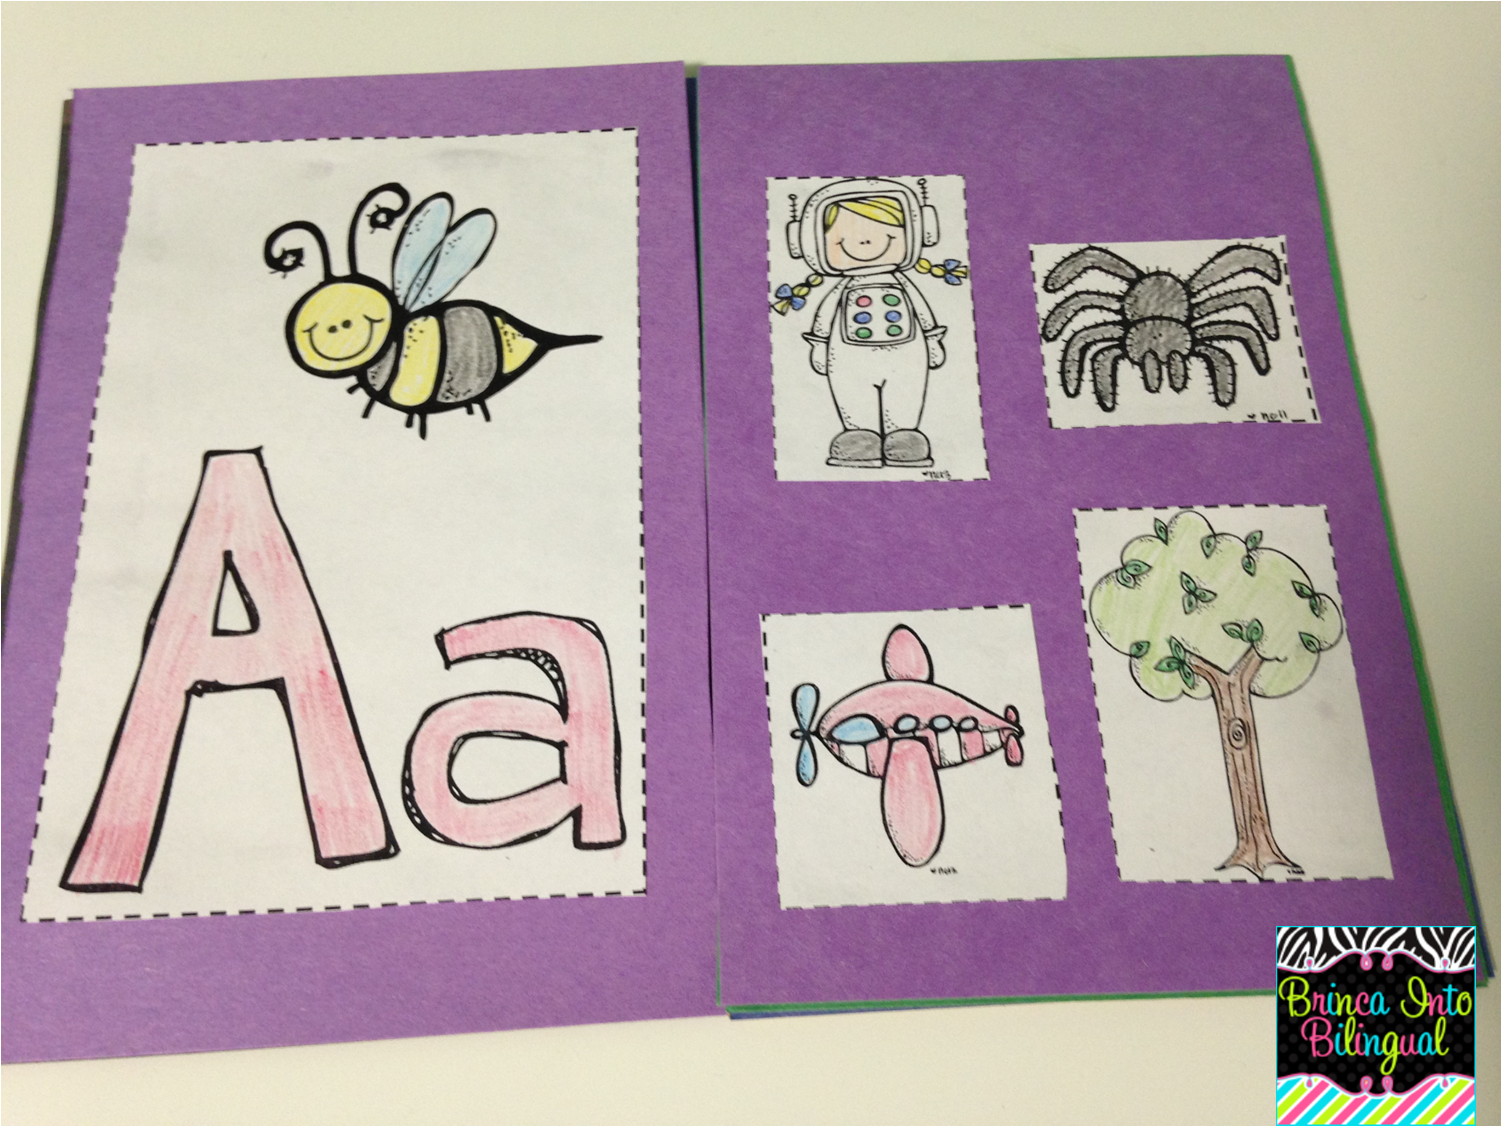 I Teach Bilinguals Bilingual Teaching Resources Alphabet In Spanish